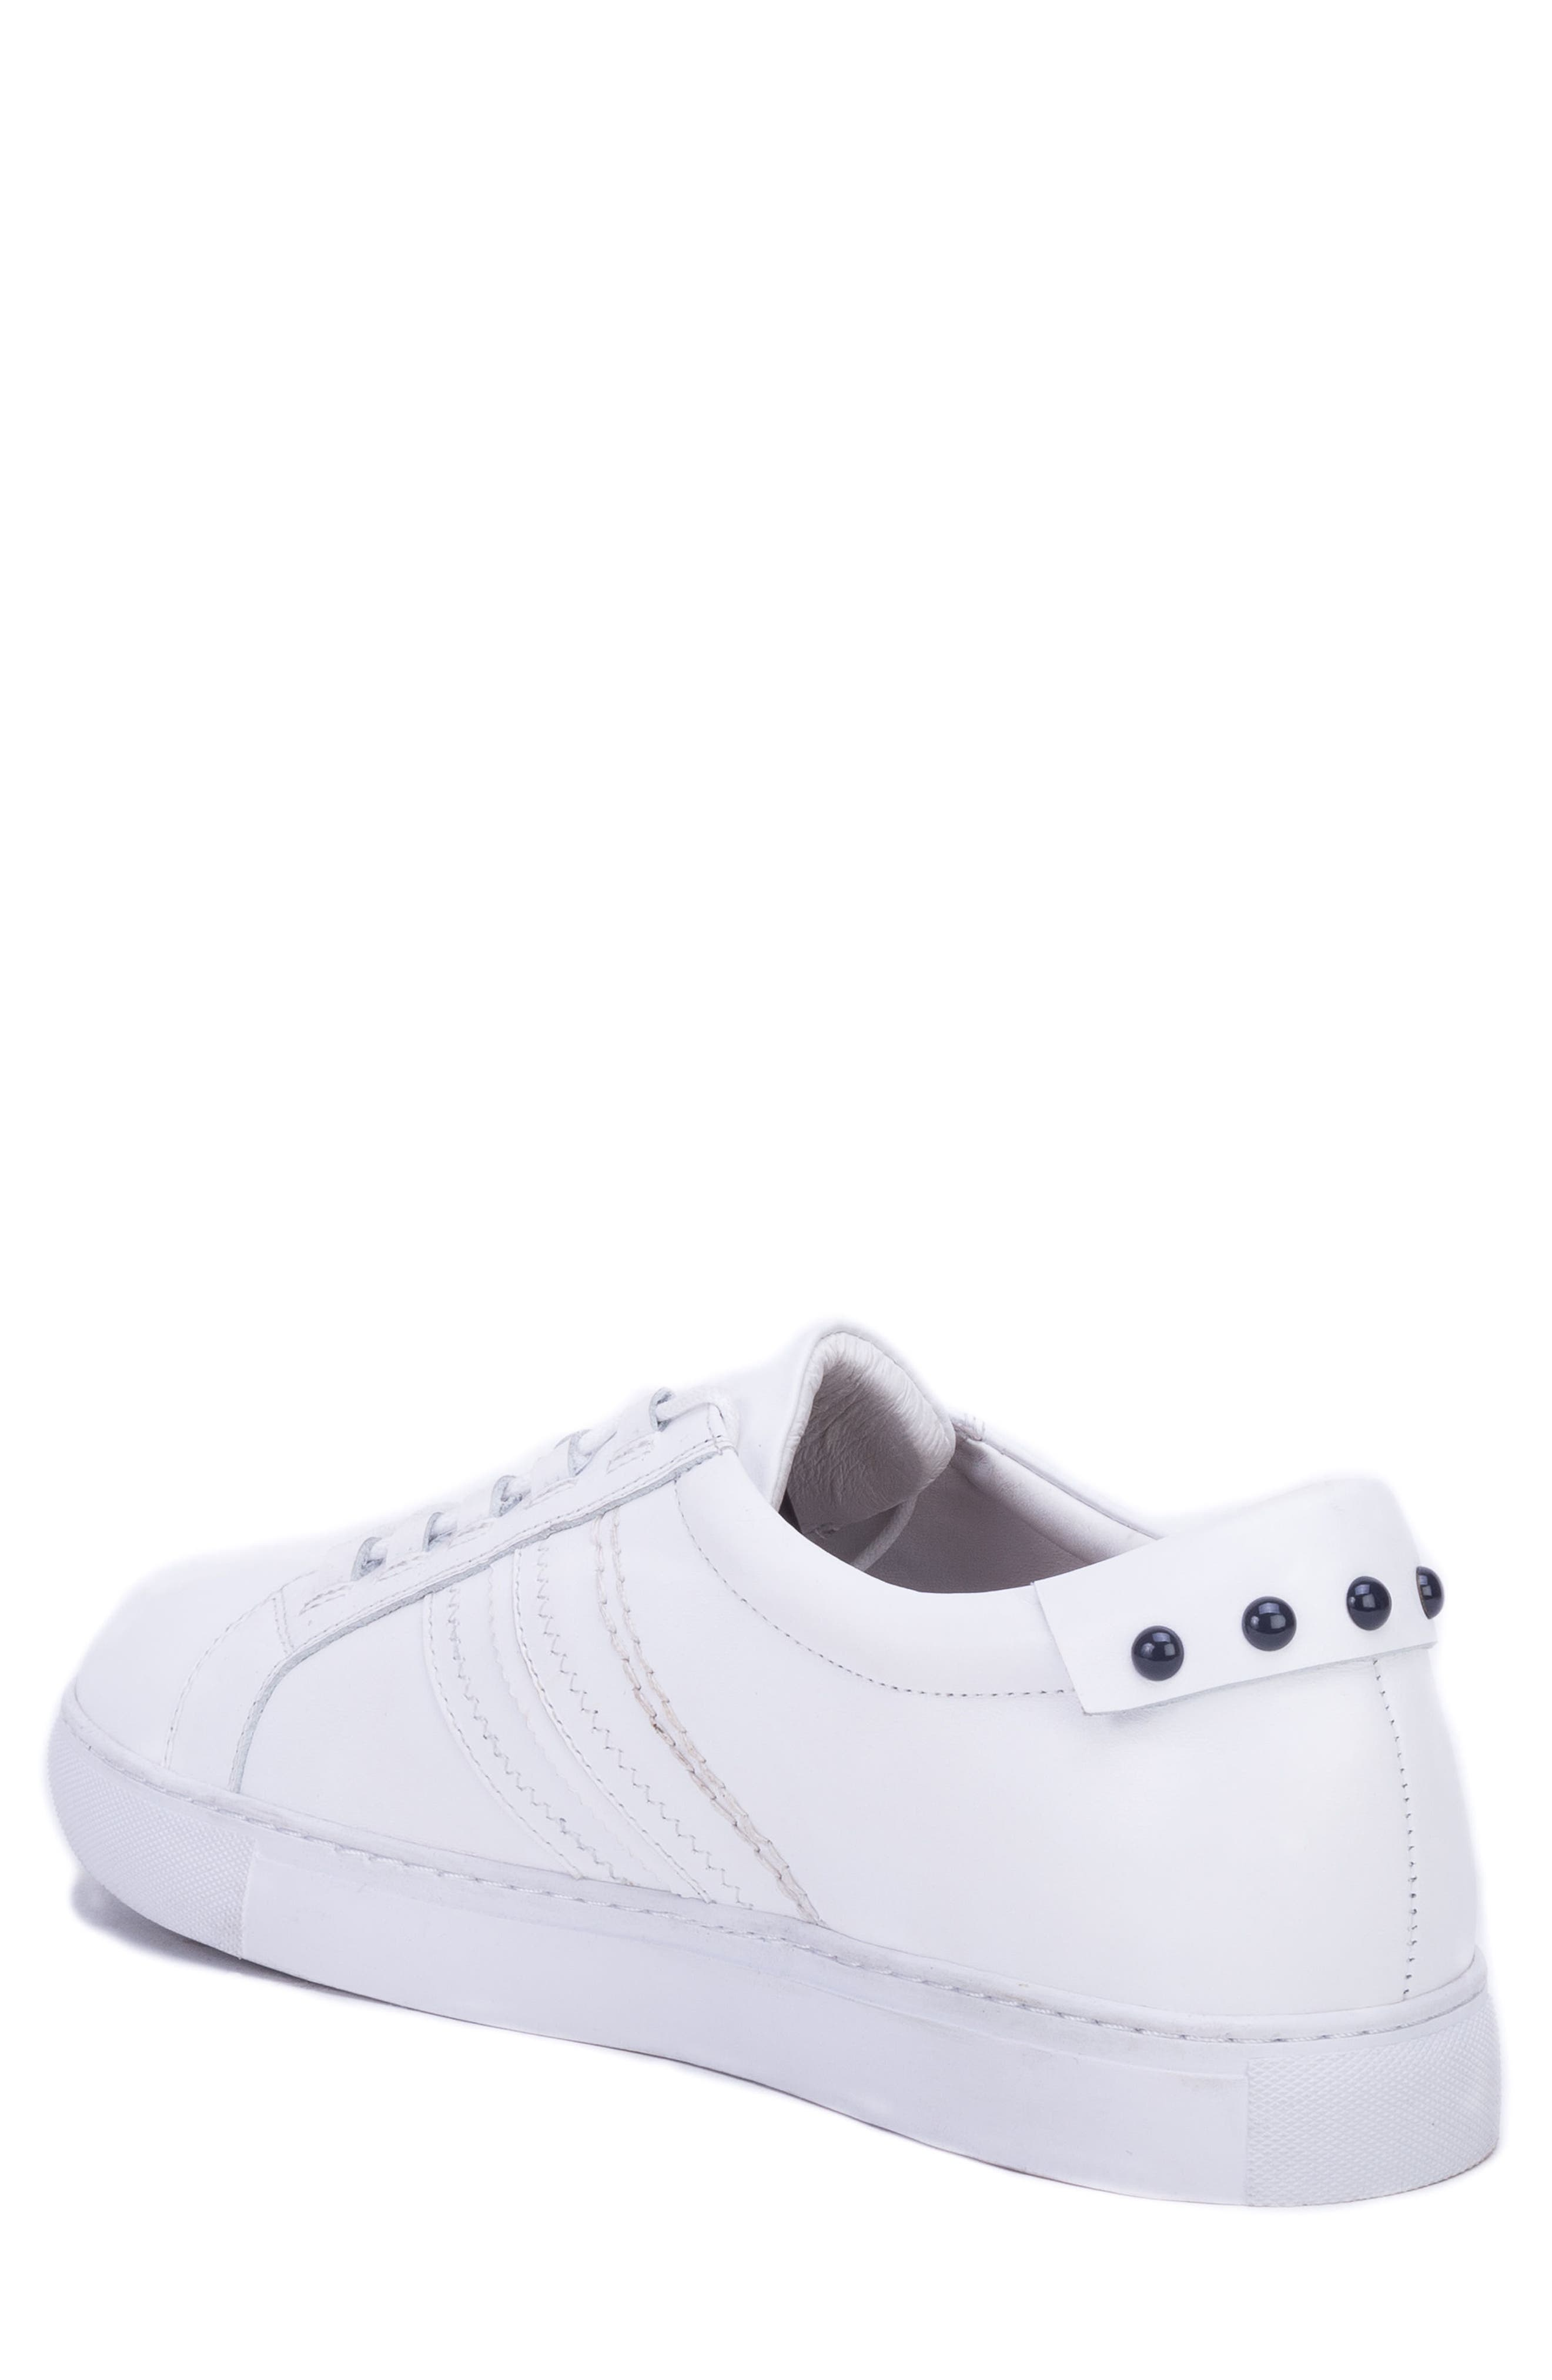 Horton Studded Low Top Sneaker,                             Alternate thumbnail 2, color,                             WHITE LEATHER